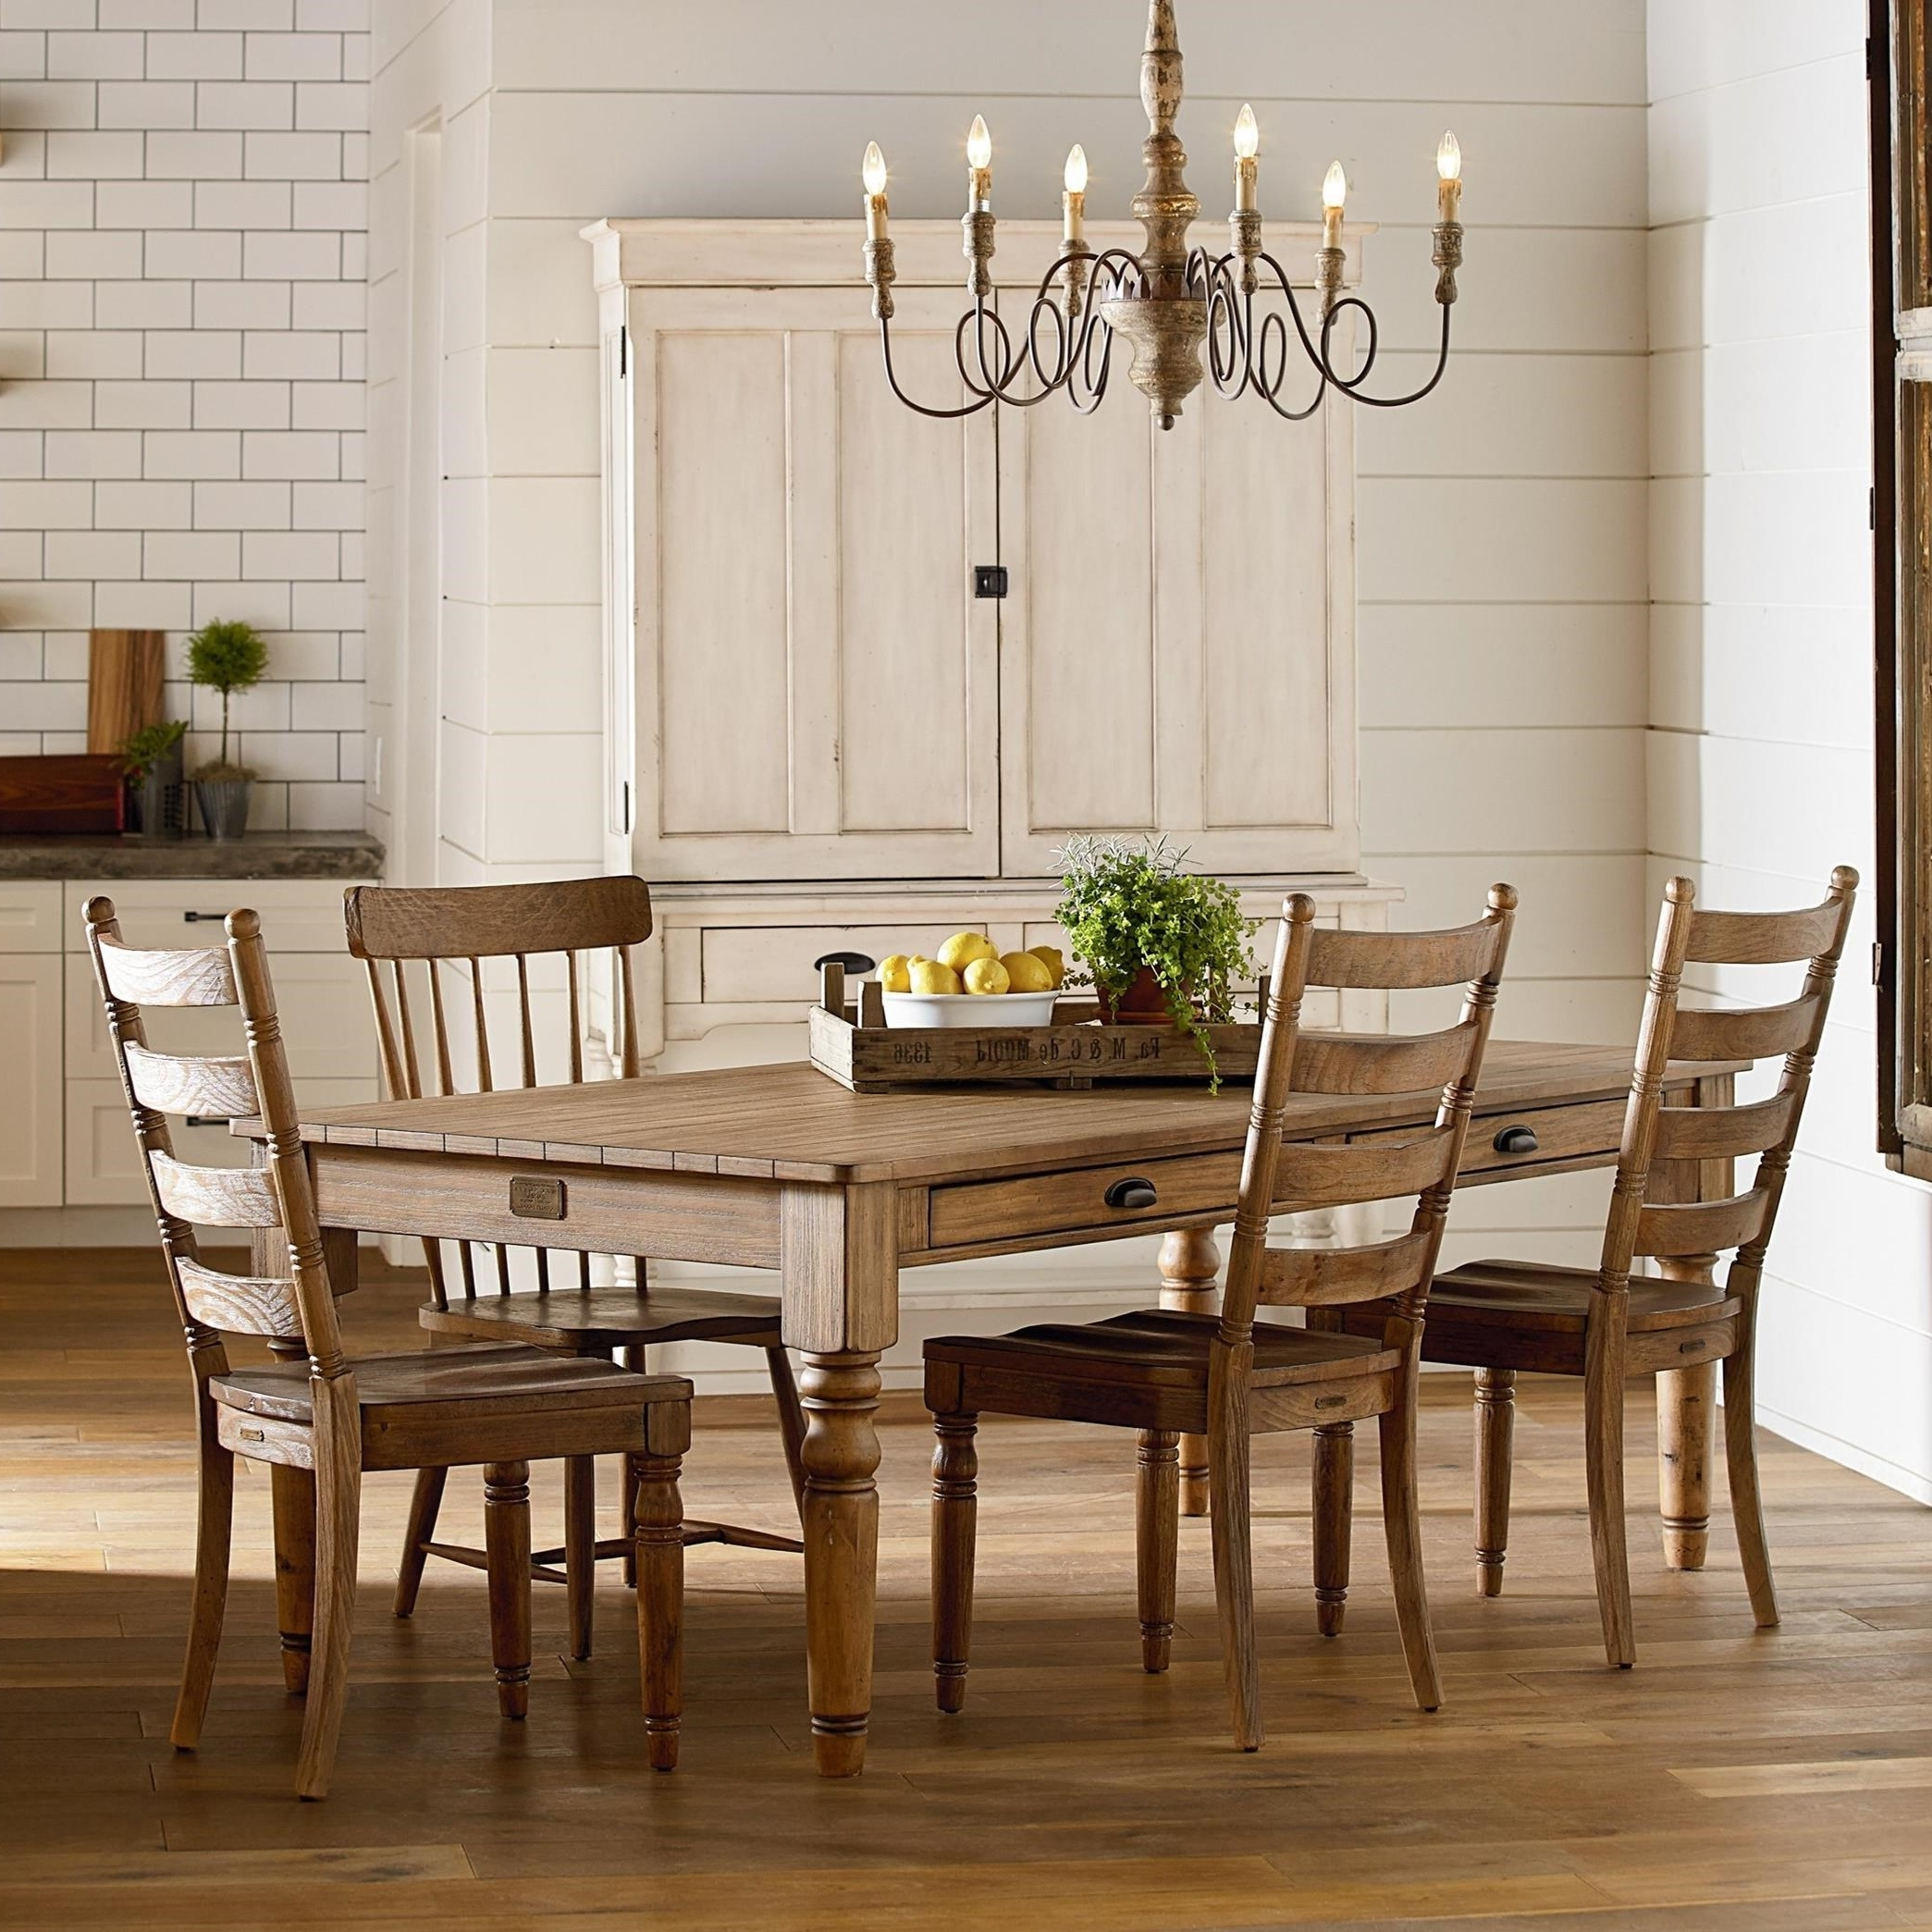 Most Current Magnolia Table — Latest News, Images And Photos — Crypticimages Intended For Magnolia Home Bench Keeping 96 Inch Dining Tables (View 17 of 25)